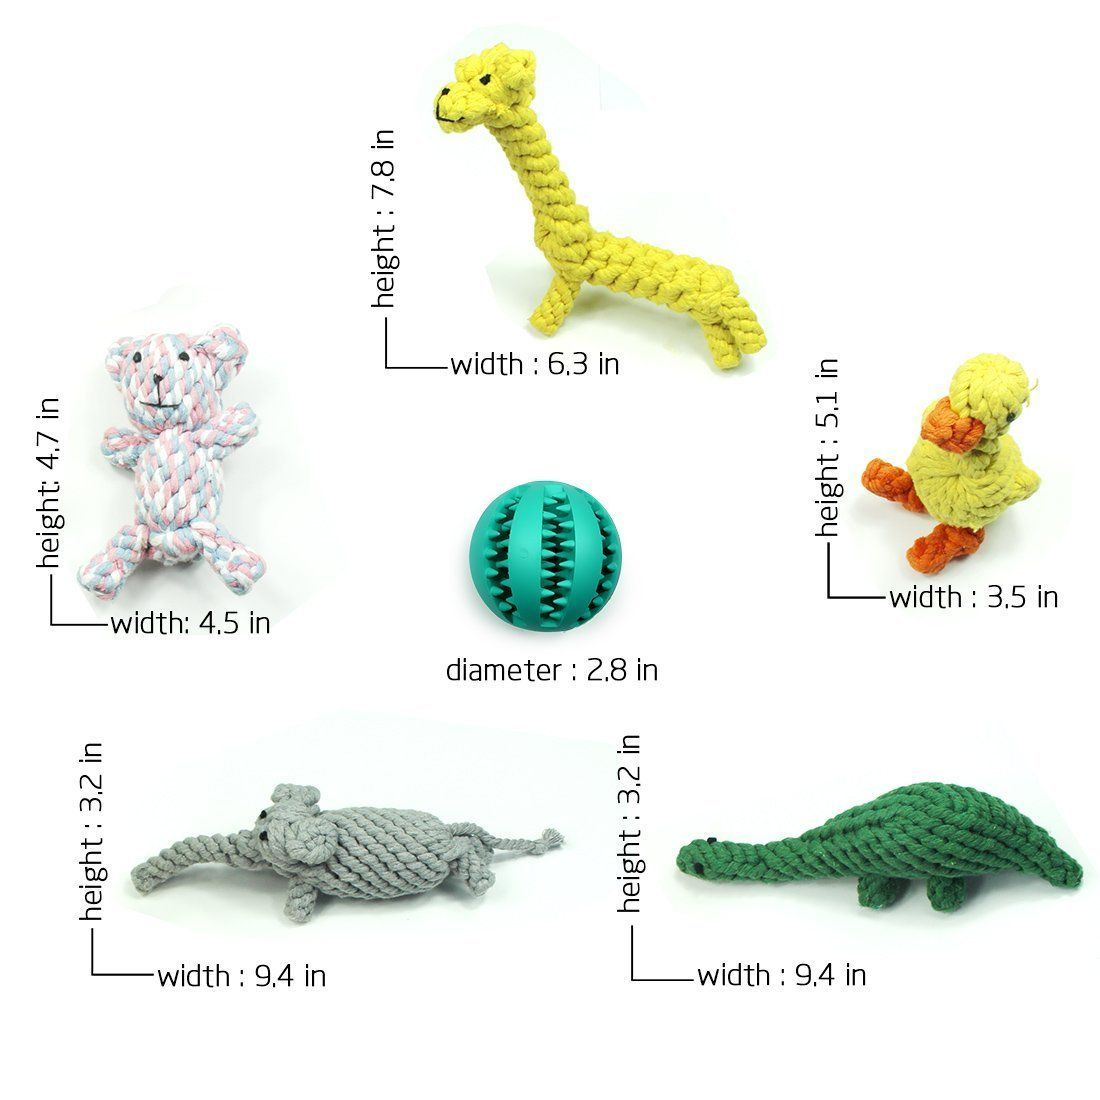 Achivy Dog Toys Animal Design Cotton Dog Rope Toys With Puppy Pet